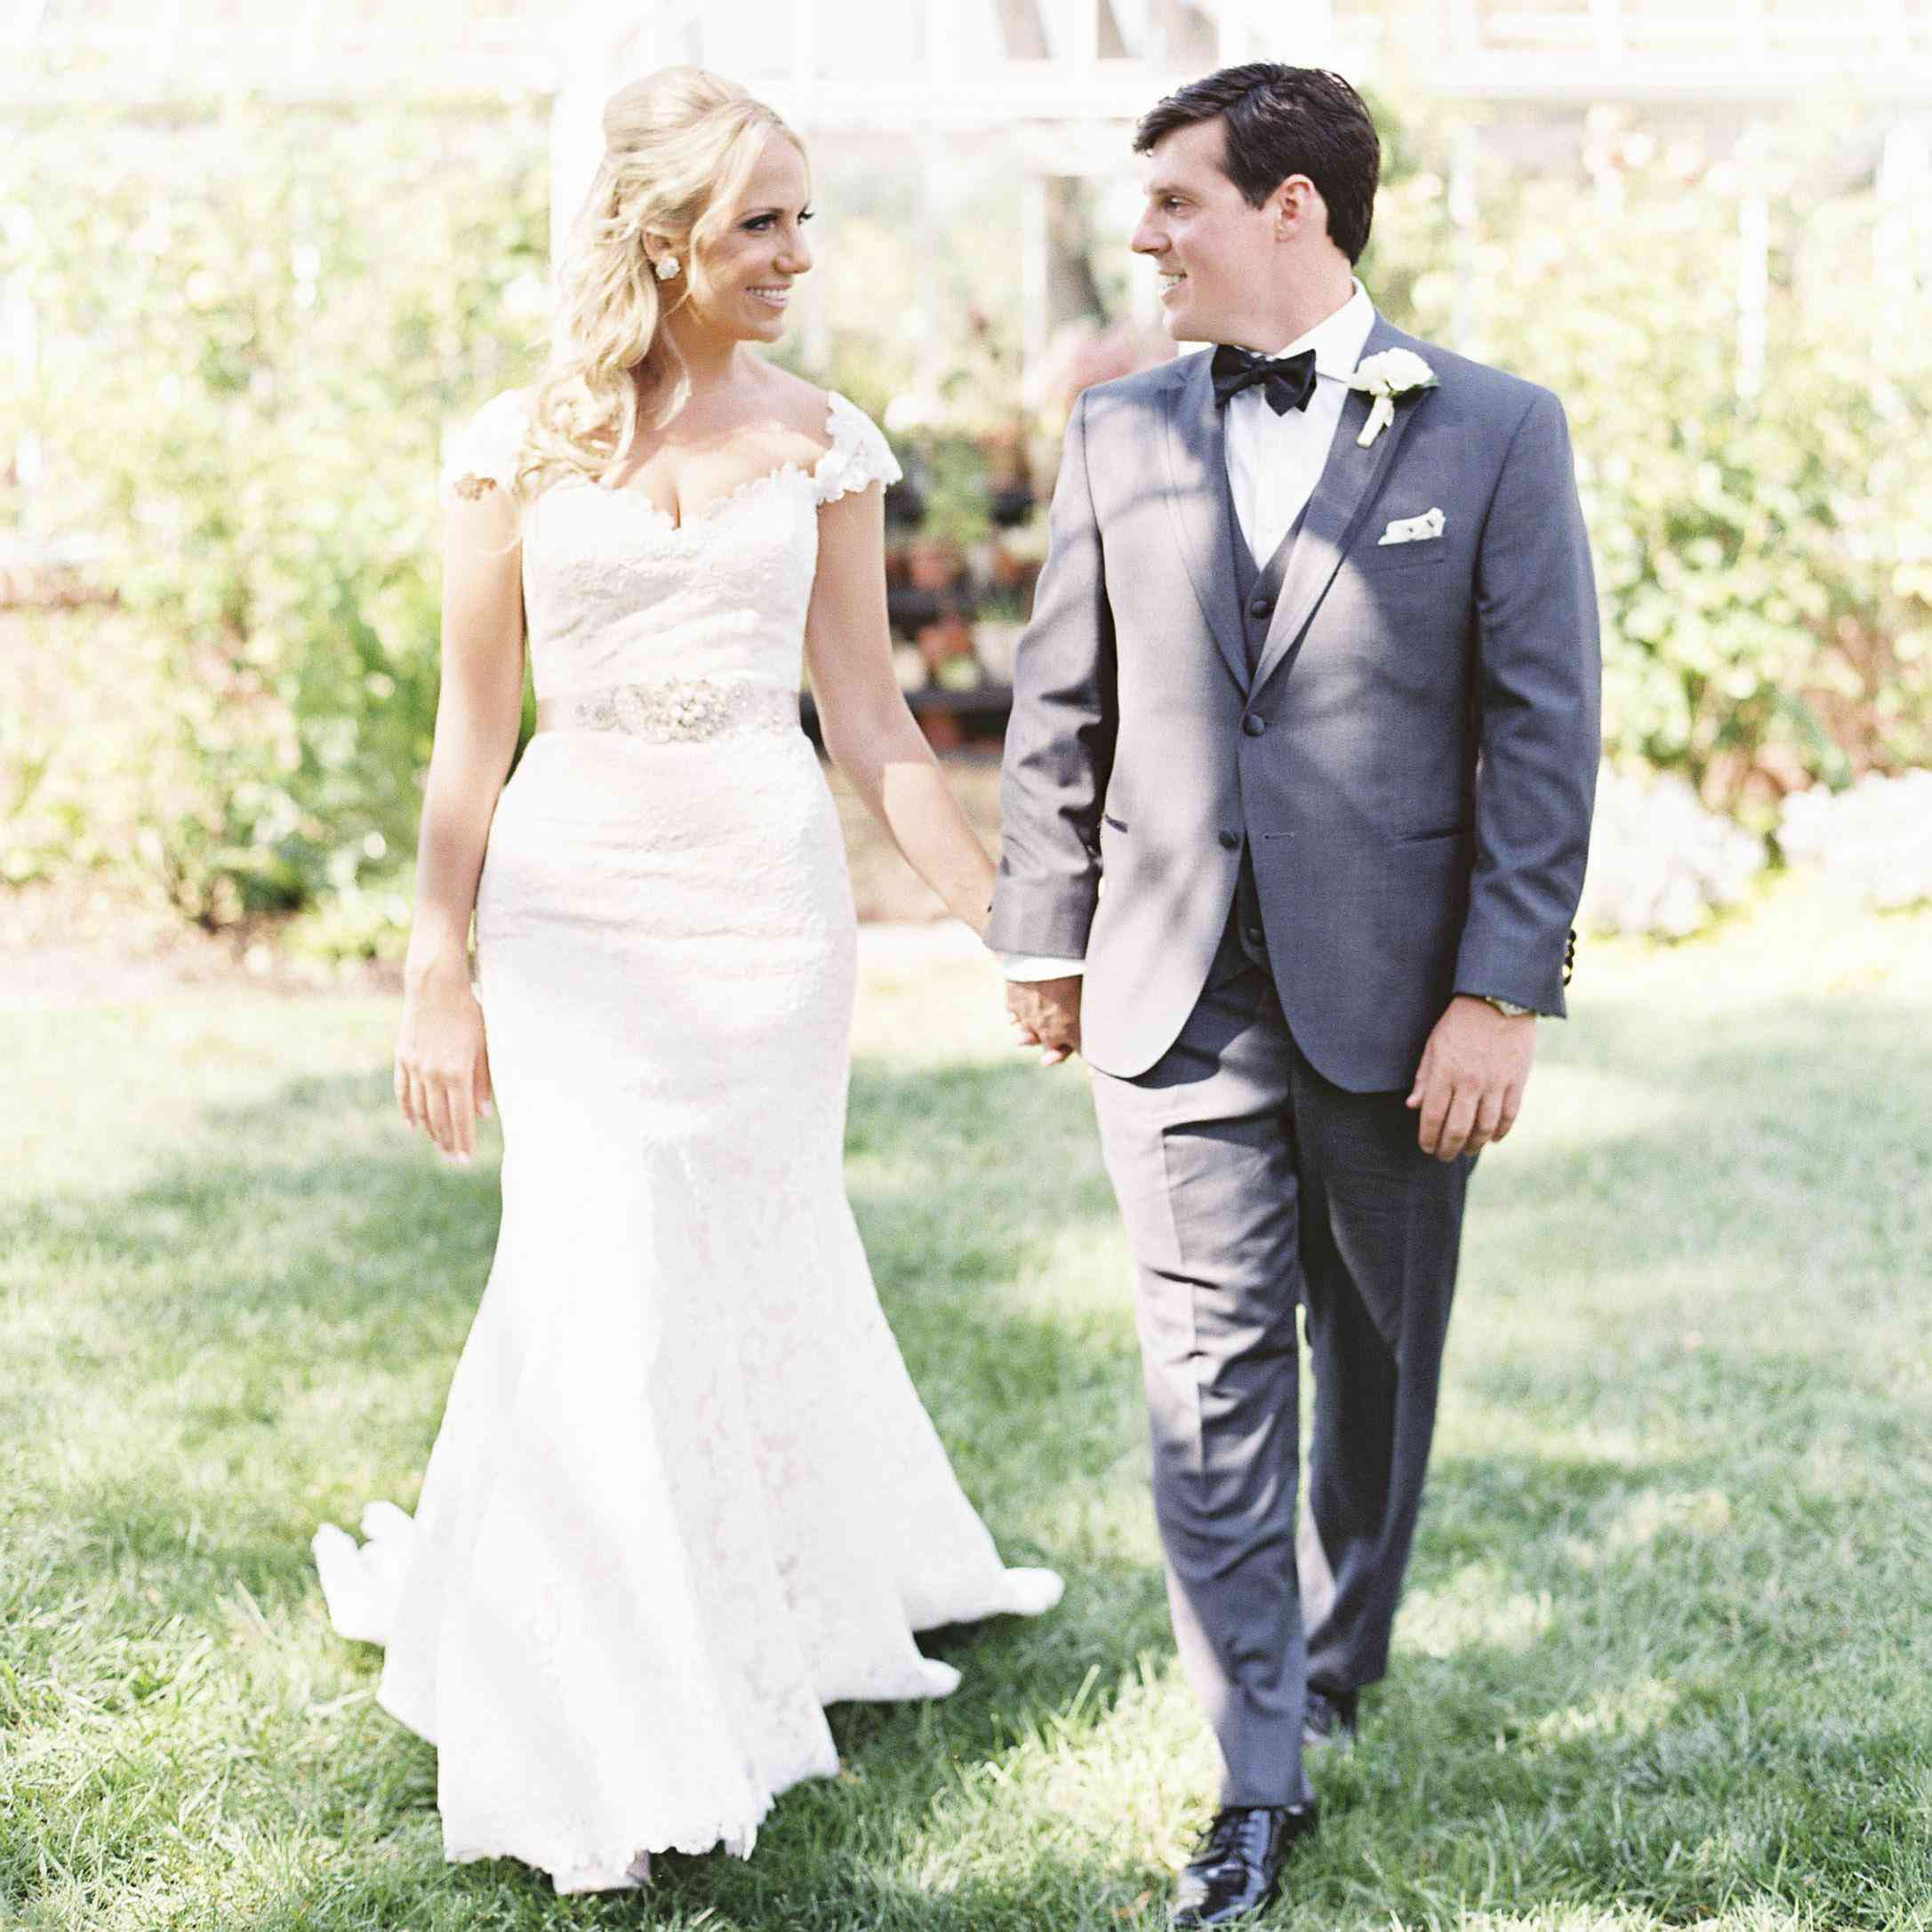 This Romantic Garden Wedding Took Place At The Maryland